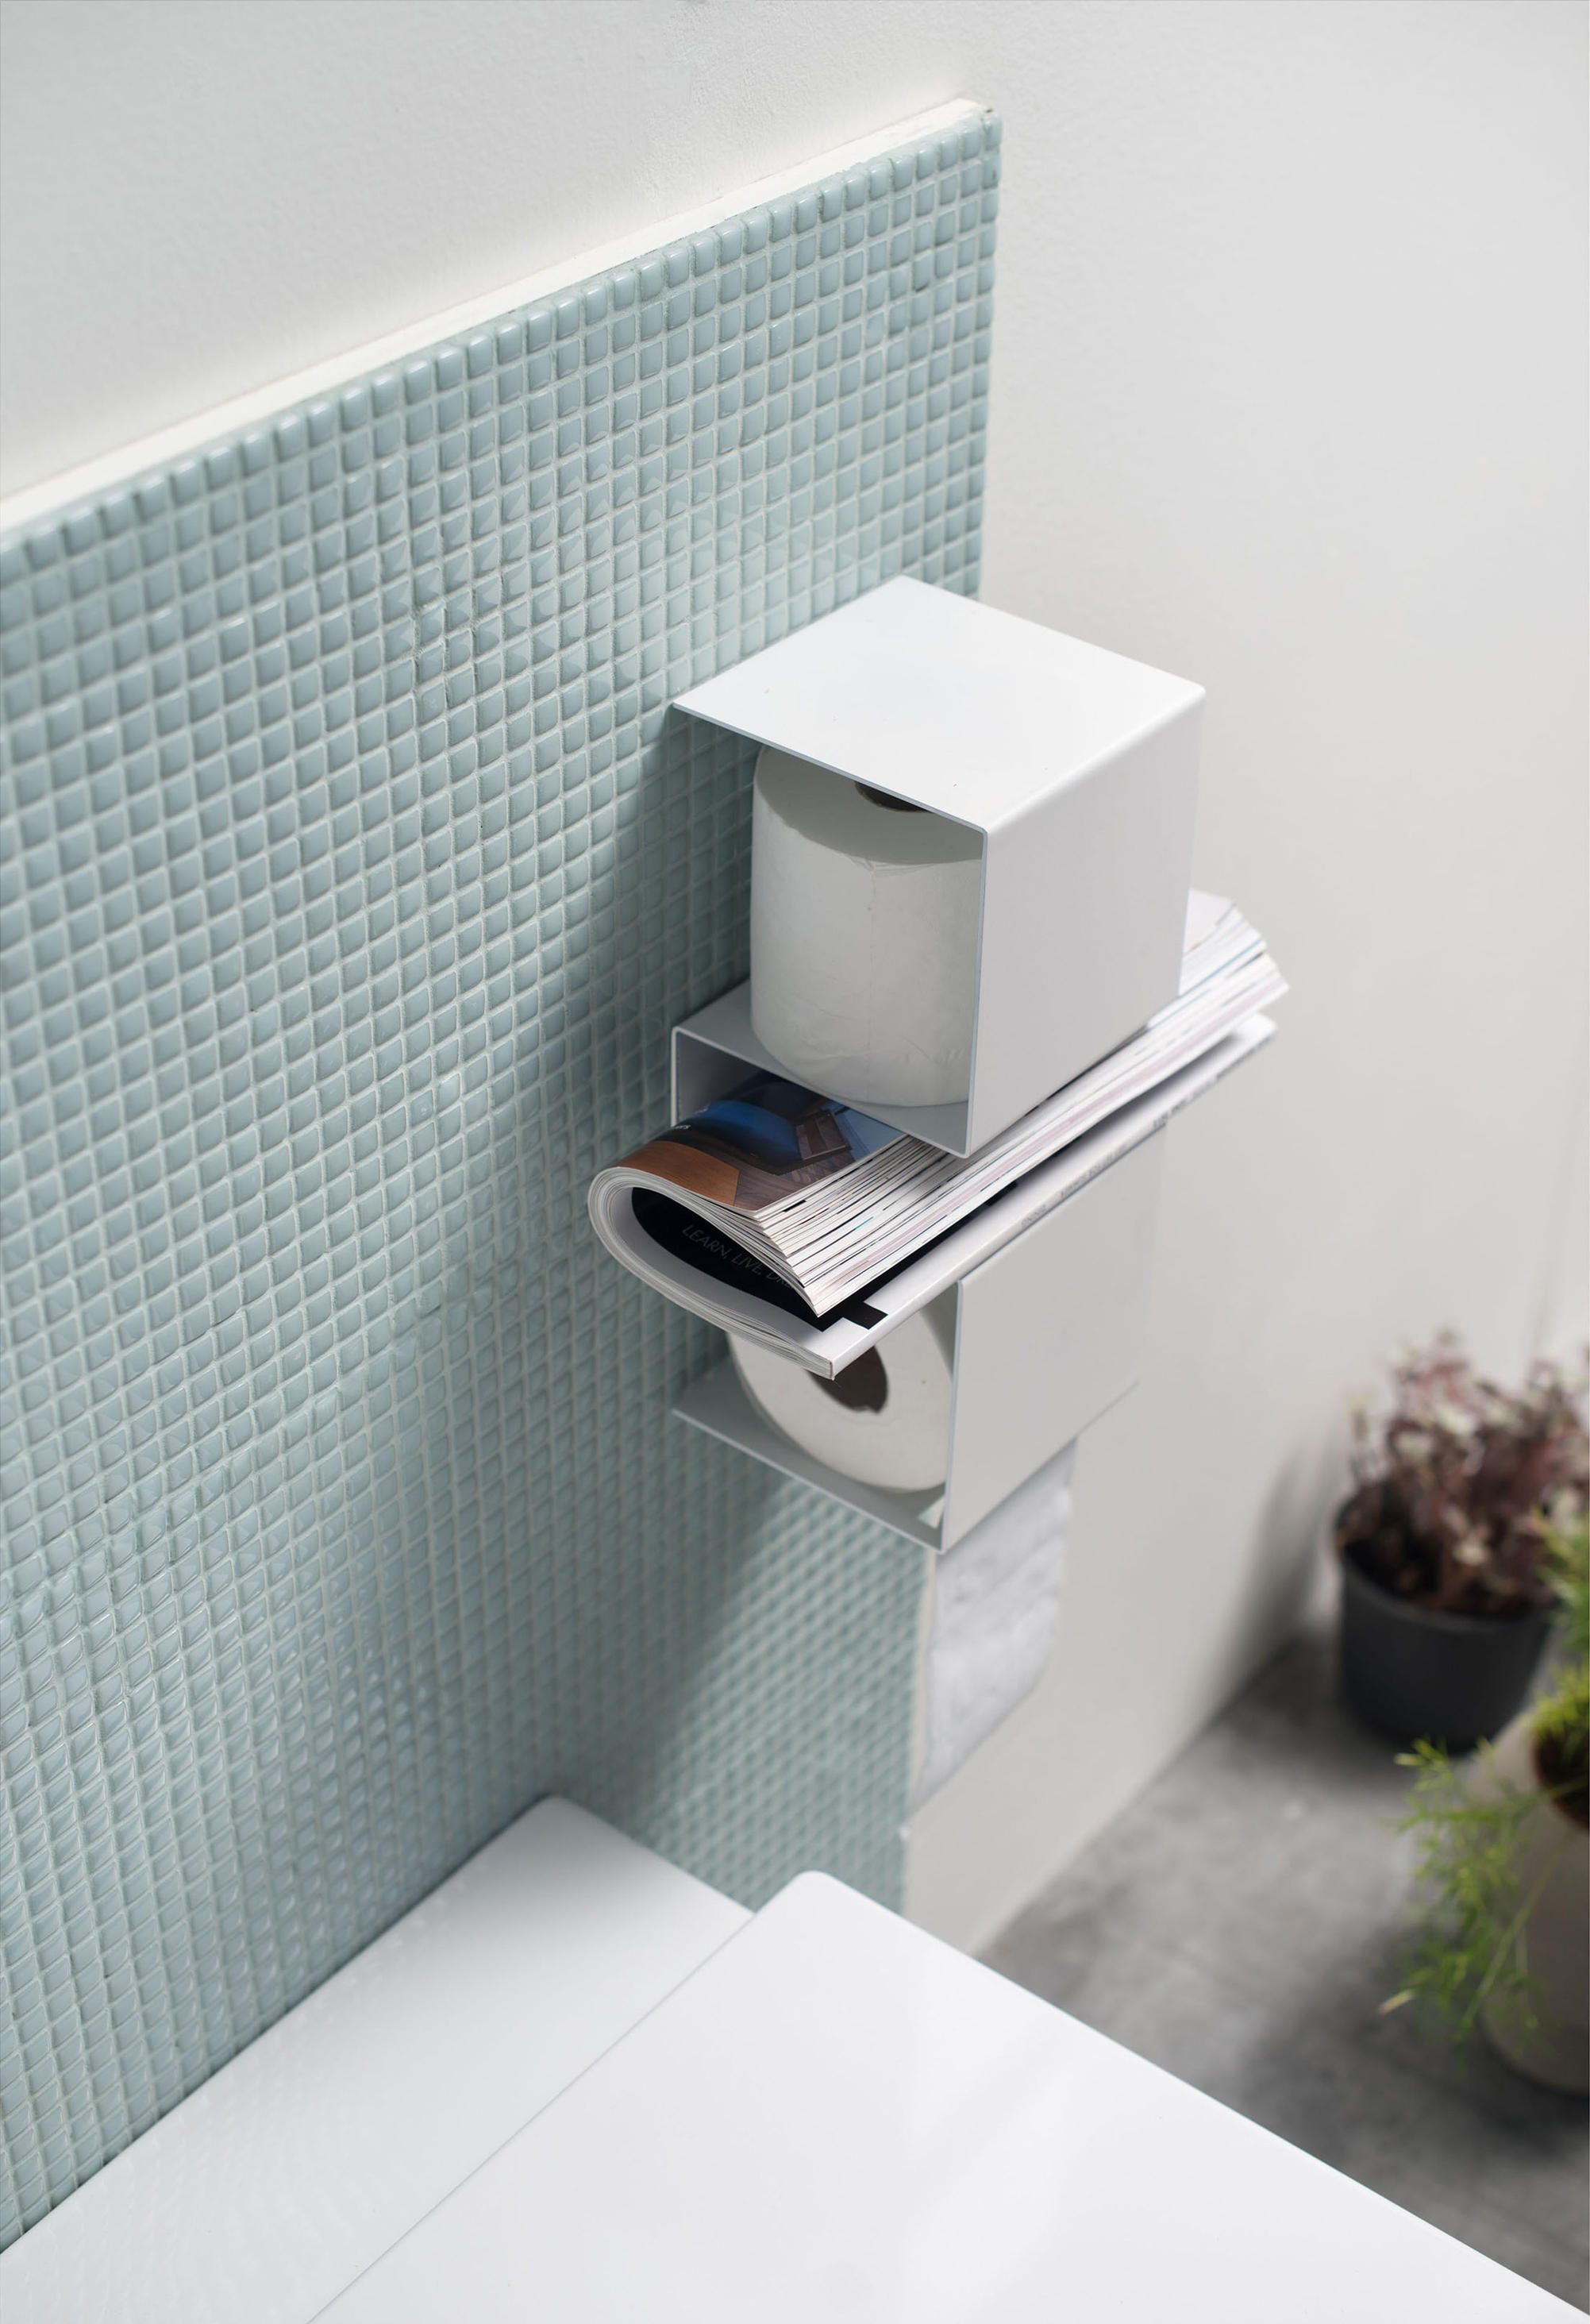 INTEAM - Bath shelving from EX.T | Architonic